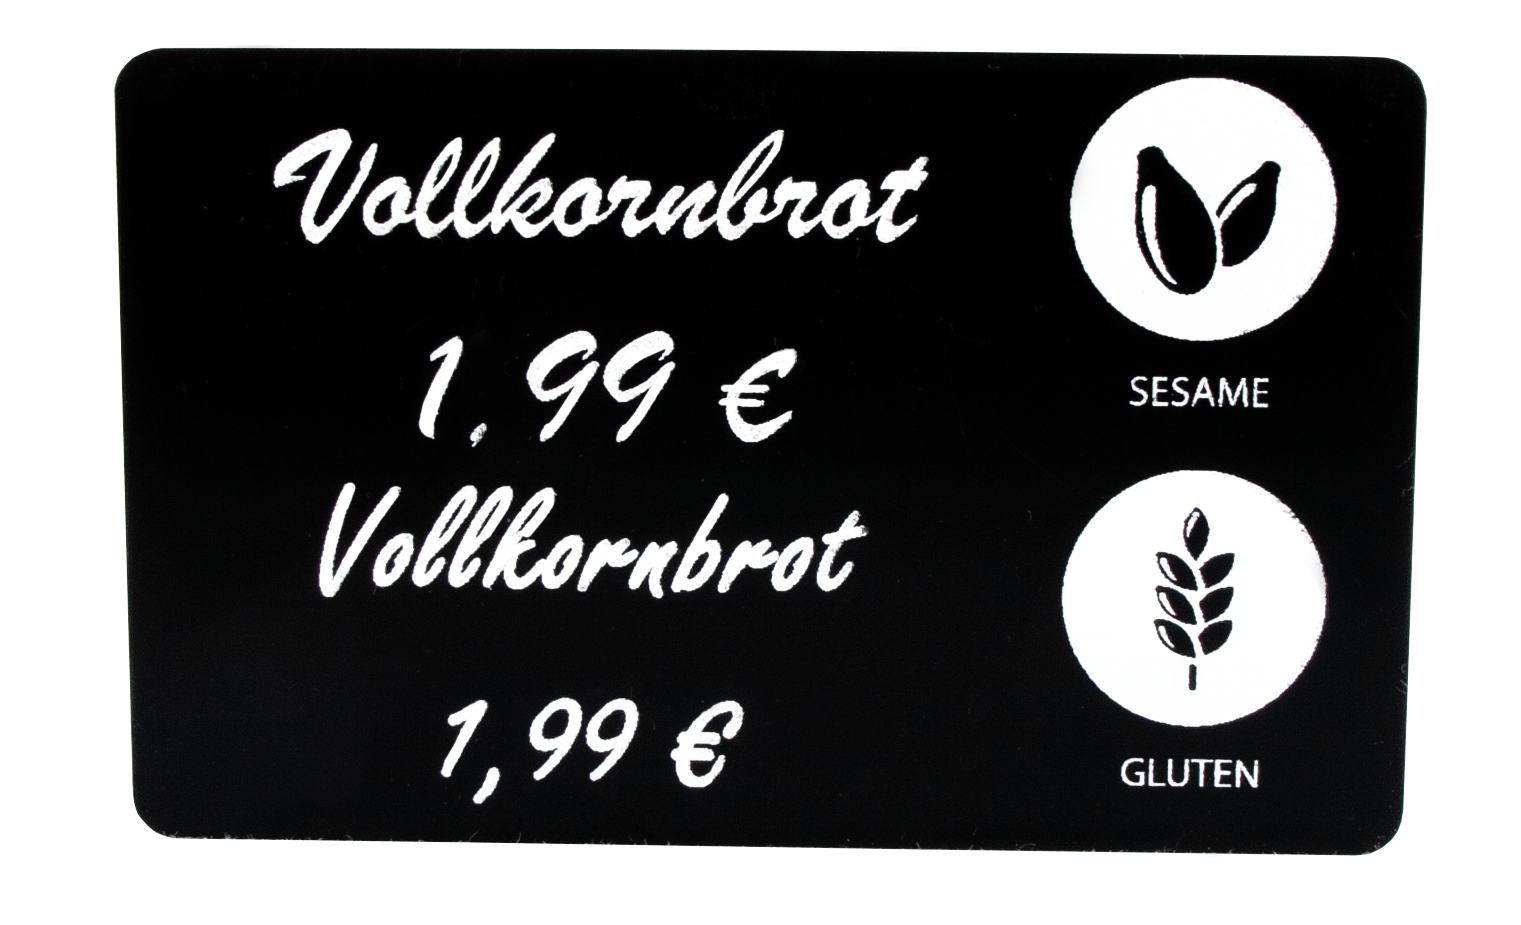 Preisschild_Allergene_Food-Safe-Card58ef690c6e022